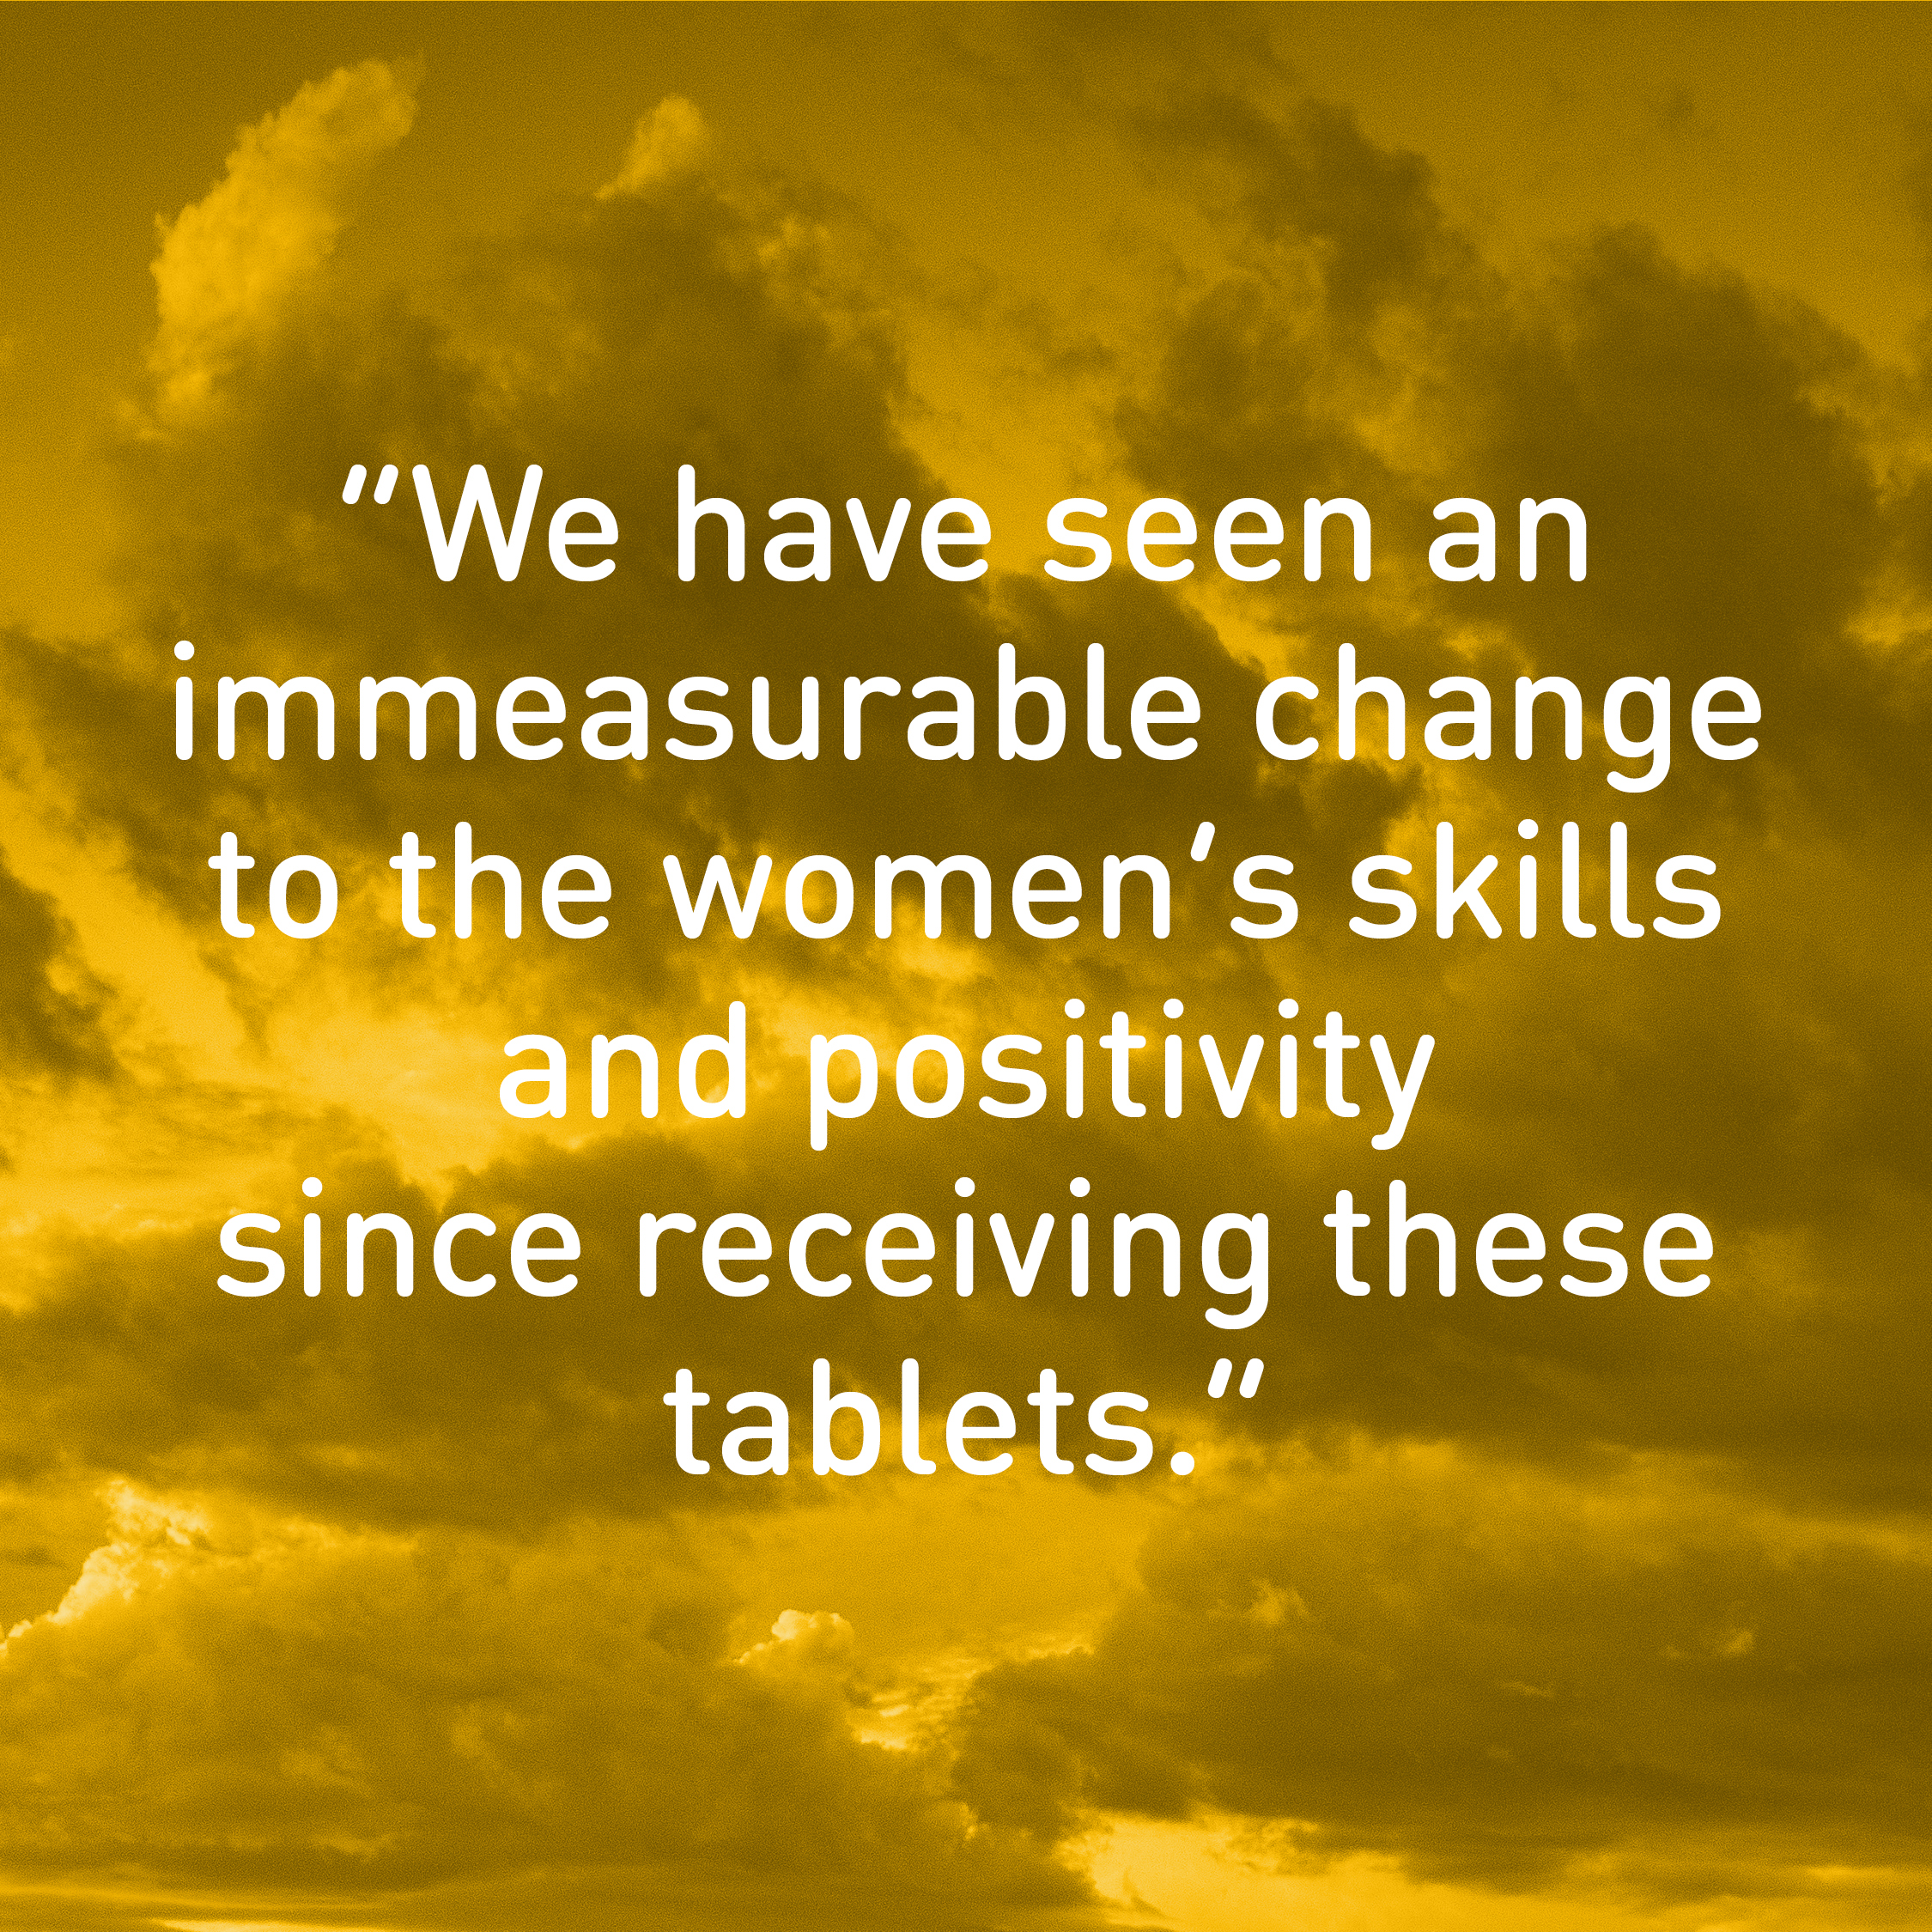 """We have seen an  immeasurable change to the women's skills and positivity  since receiving these tablets."""